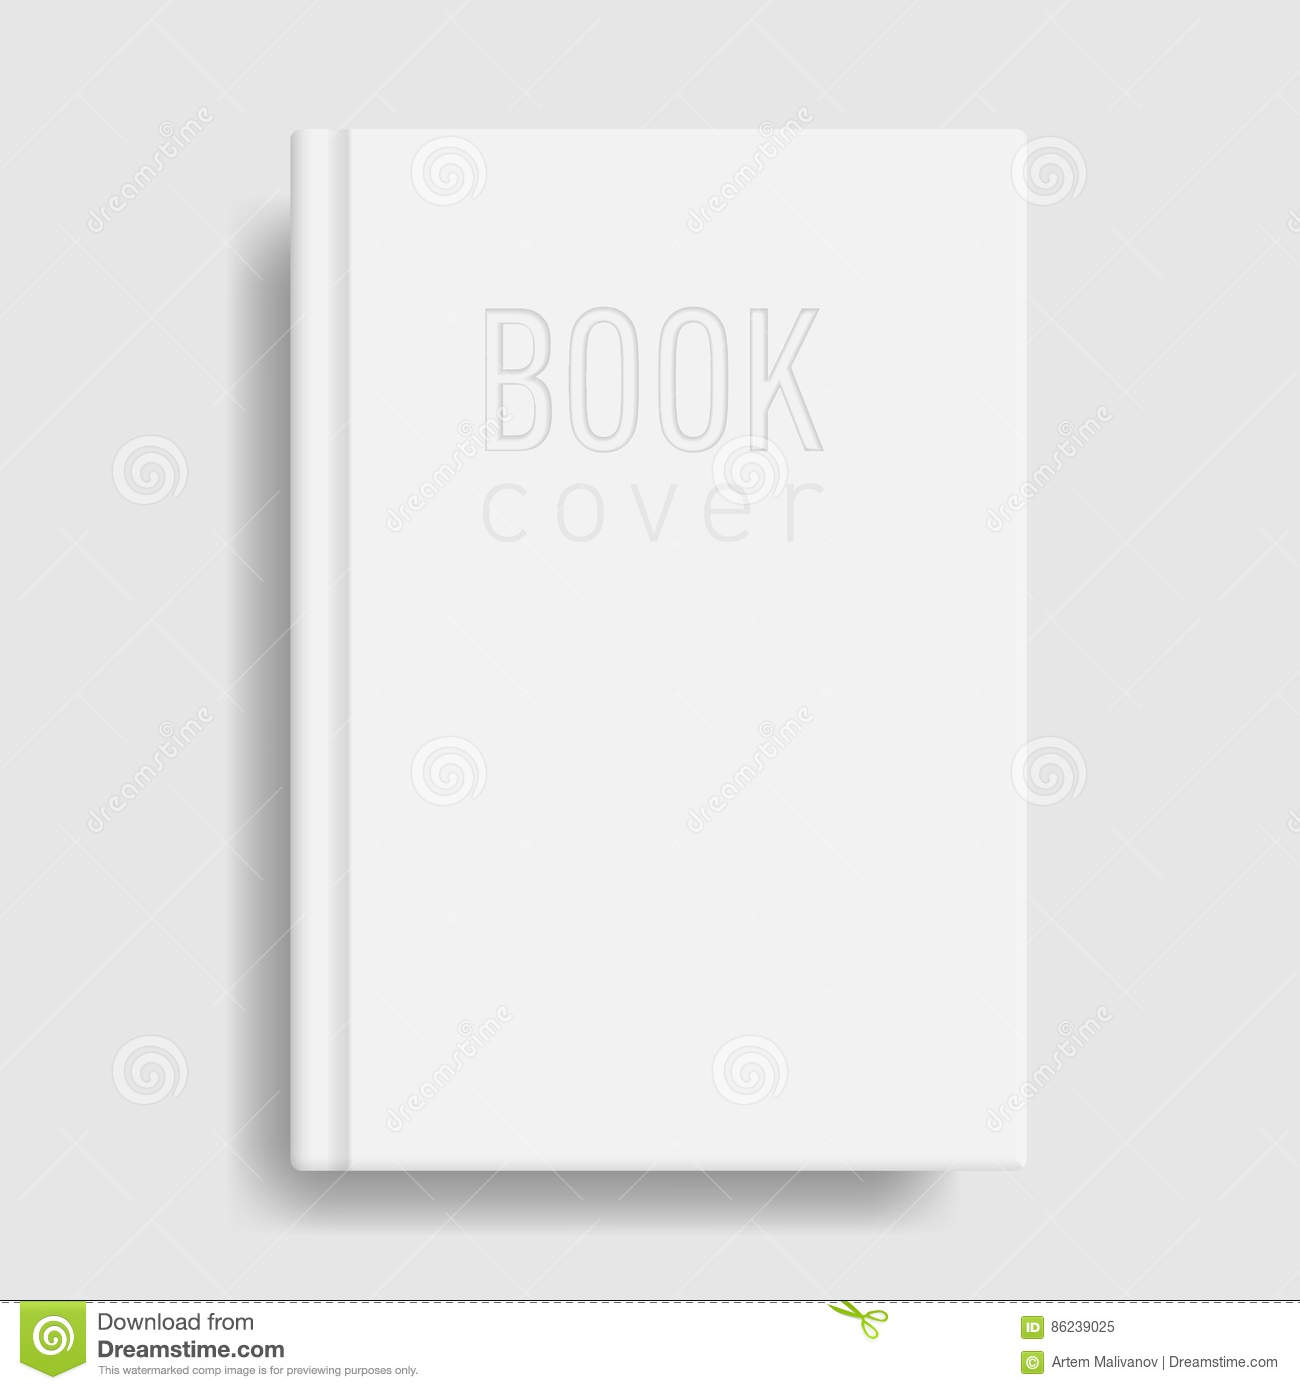 Blank Book Cover Vector Illustration Free ~ Book cover mockup blank white template stock vector